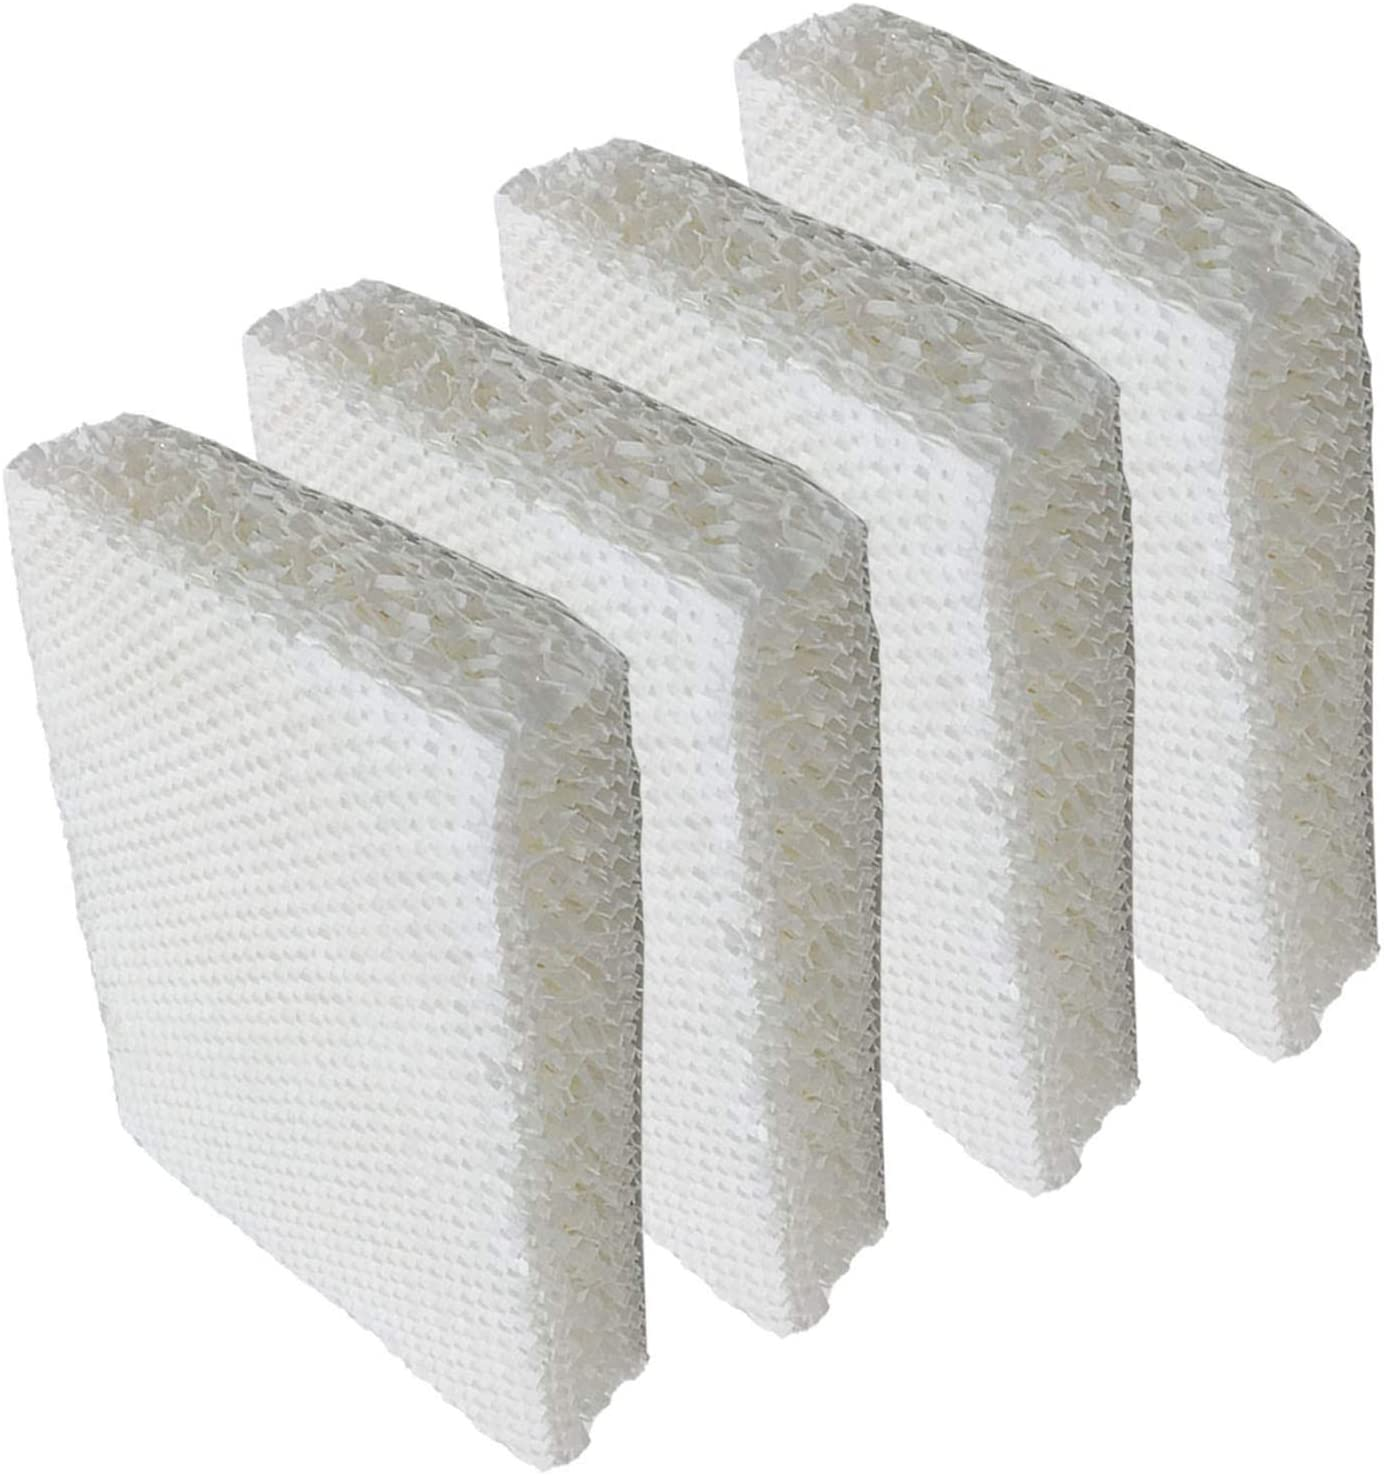 PUREBURG Dedication 4-Pack Replacement Humidifier Compatible Max 86% OFF Filters w Wick